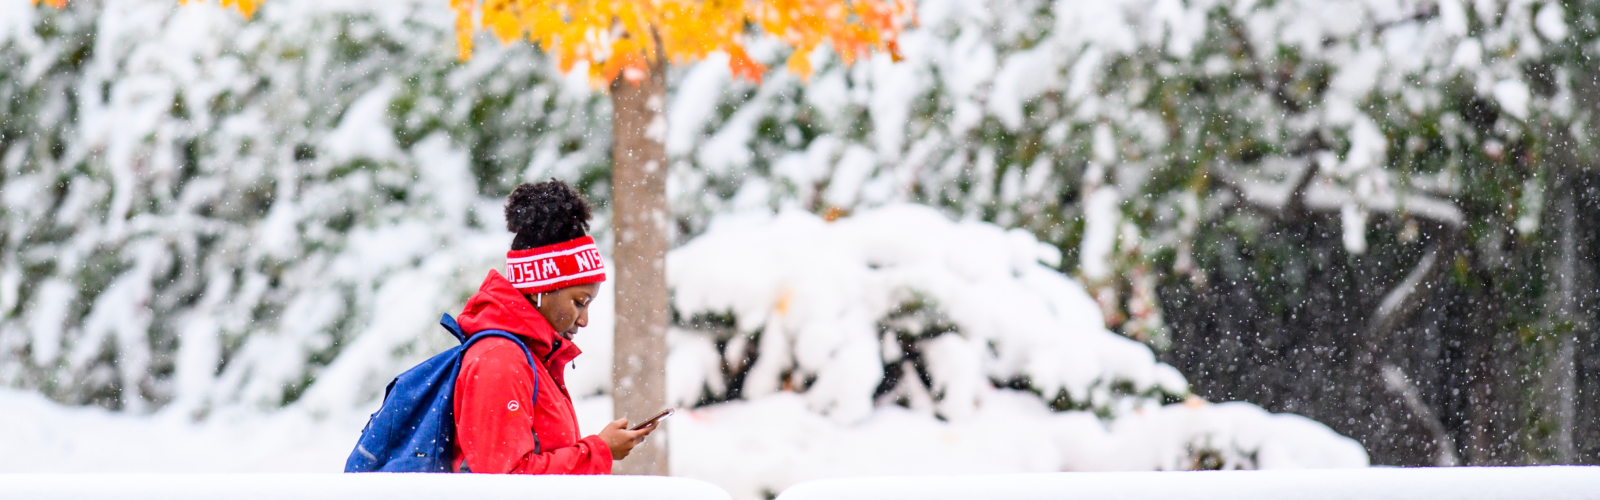 A woman in a bright red coat looks at her phone while walking through a snowy landscape with yellow leaves on a tree in the background.